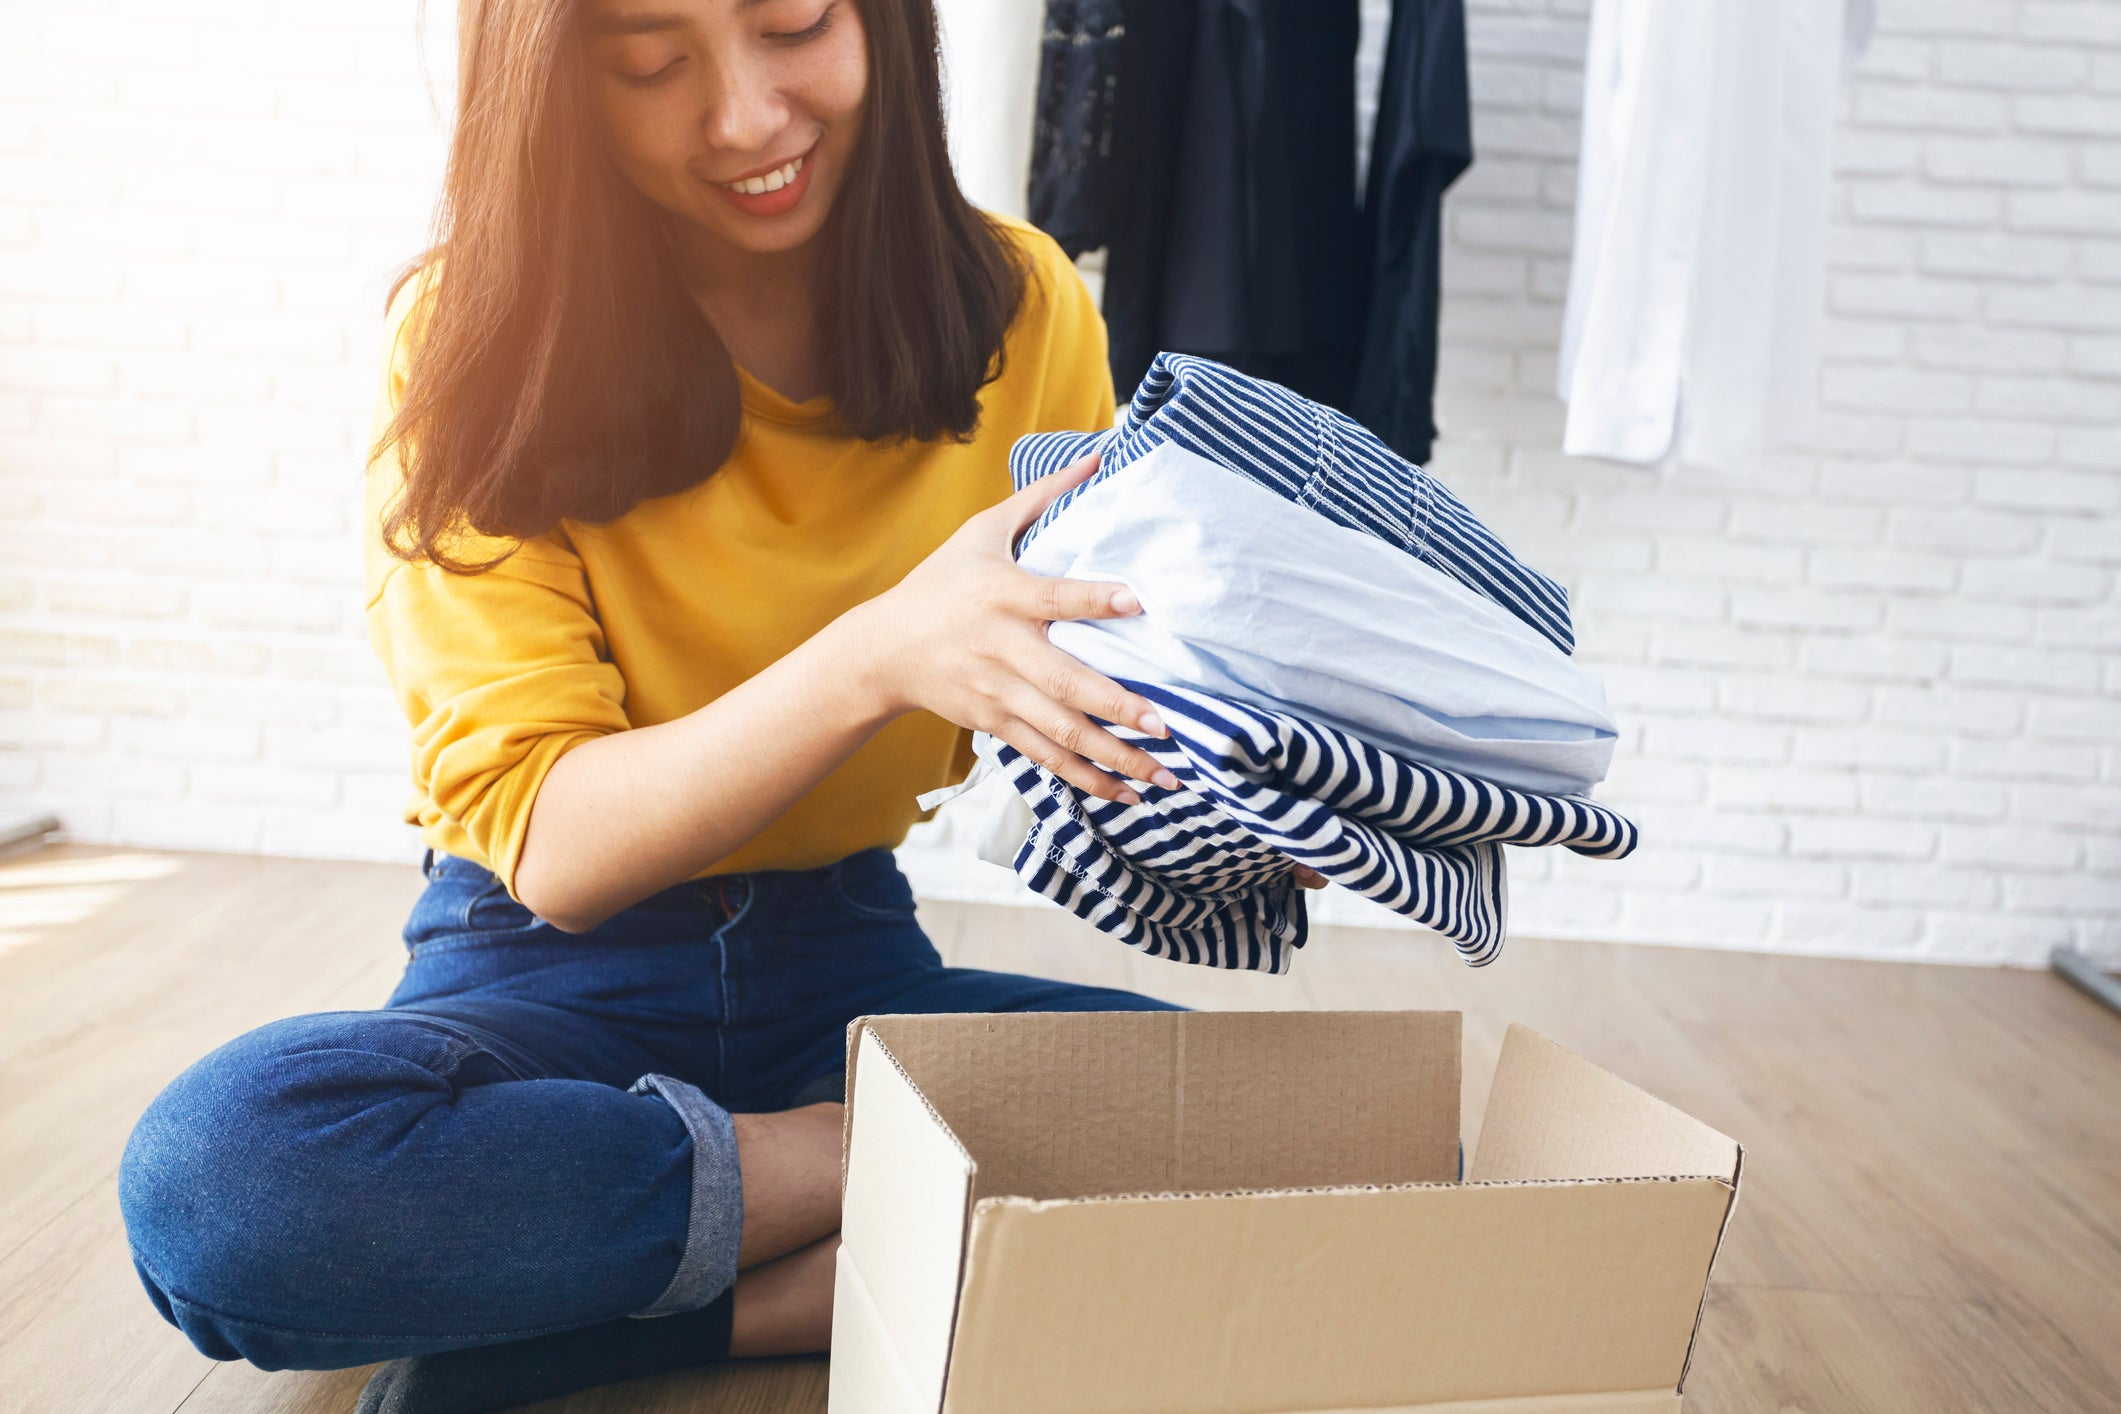 Stitch Fix: The Earnings Trends to Watch on Tuesday